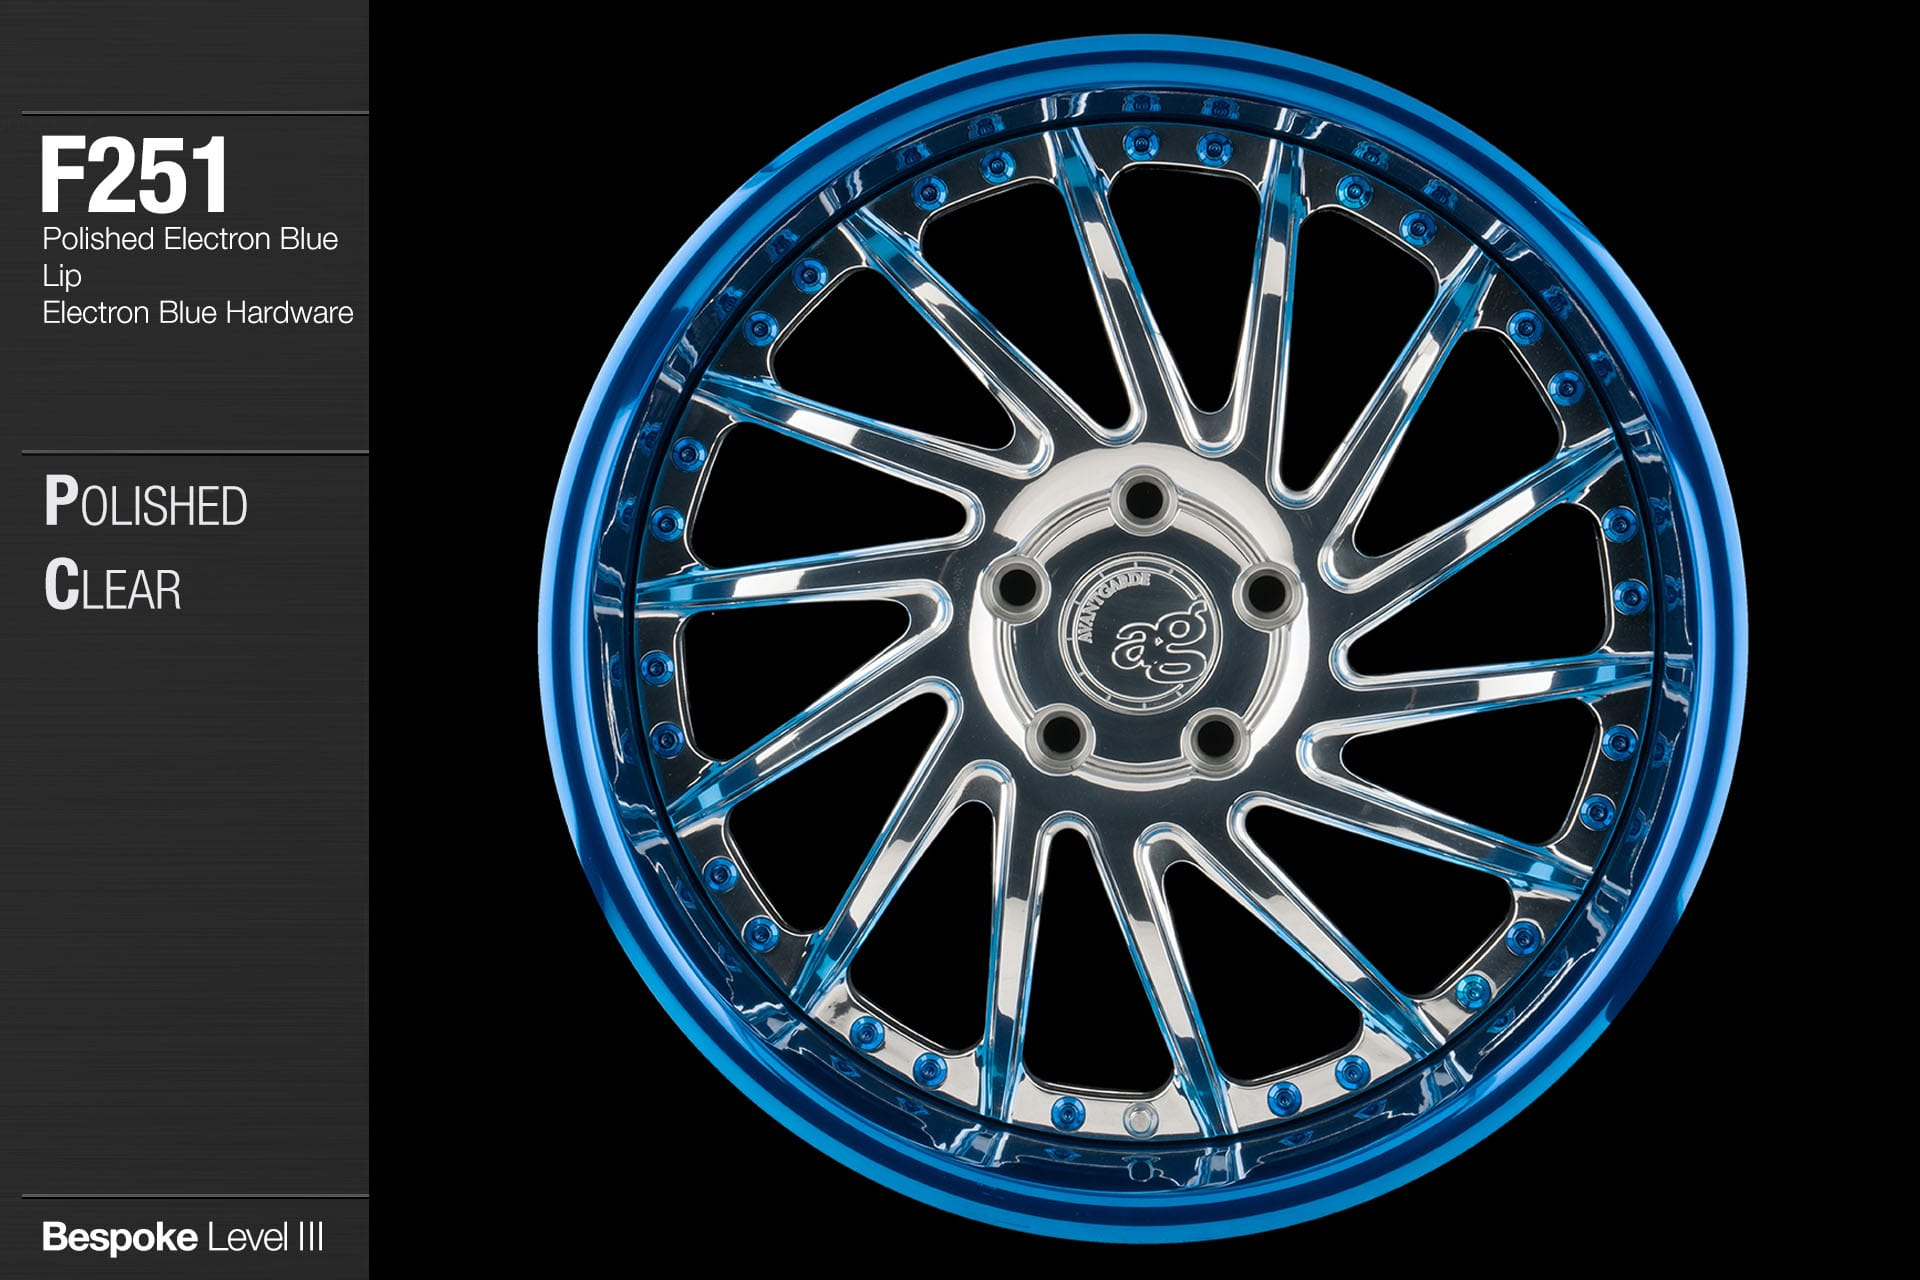 avant-garde-ag-wheels-f251-polished-clear-face-polished-electron-blue-lip-hardware-1-min